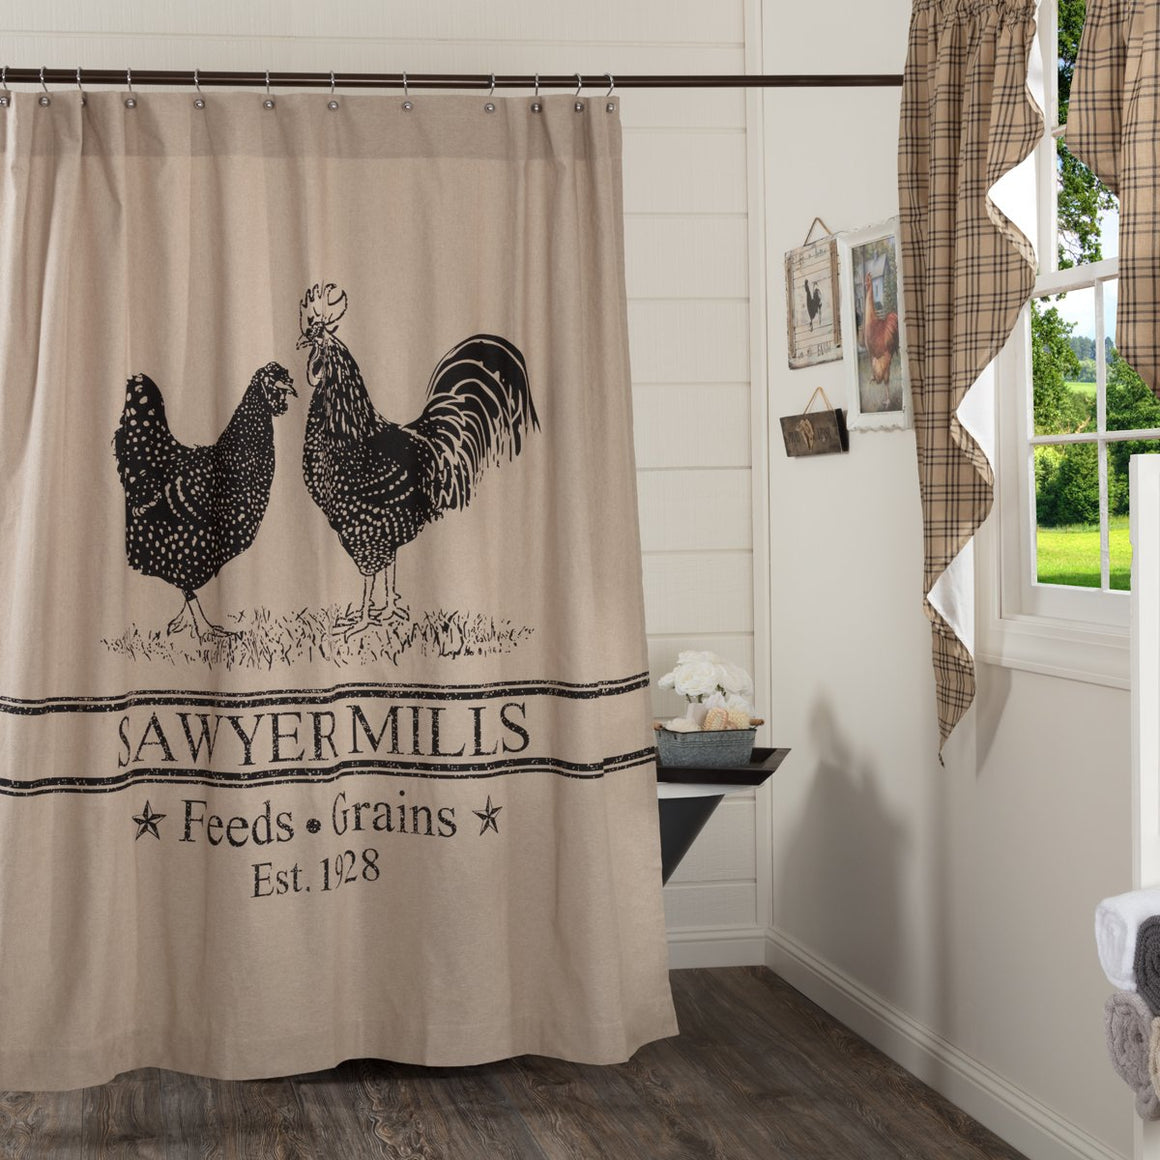 Sawyer Mill Charcoal Poultry Shower Curtain 72x72